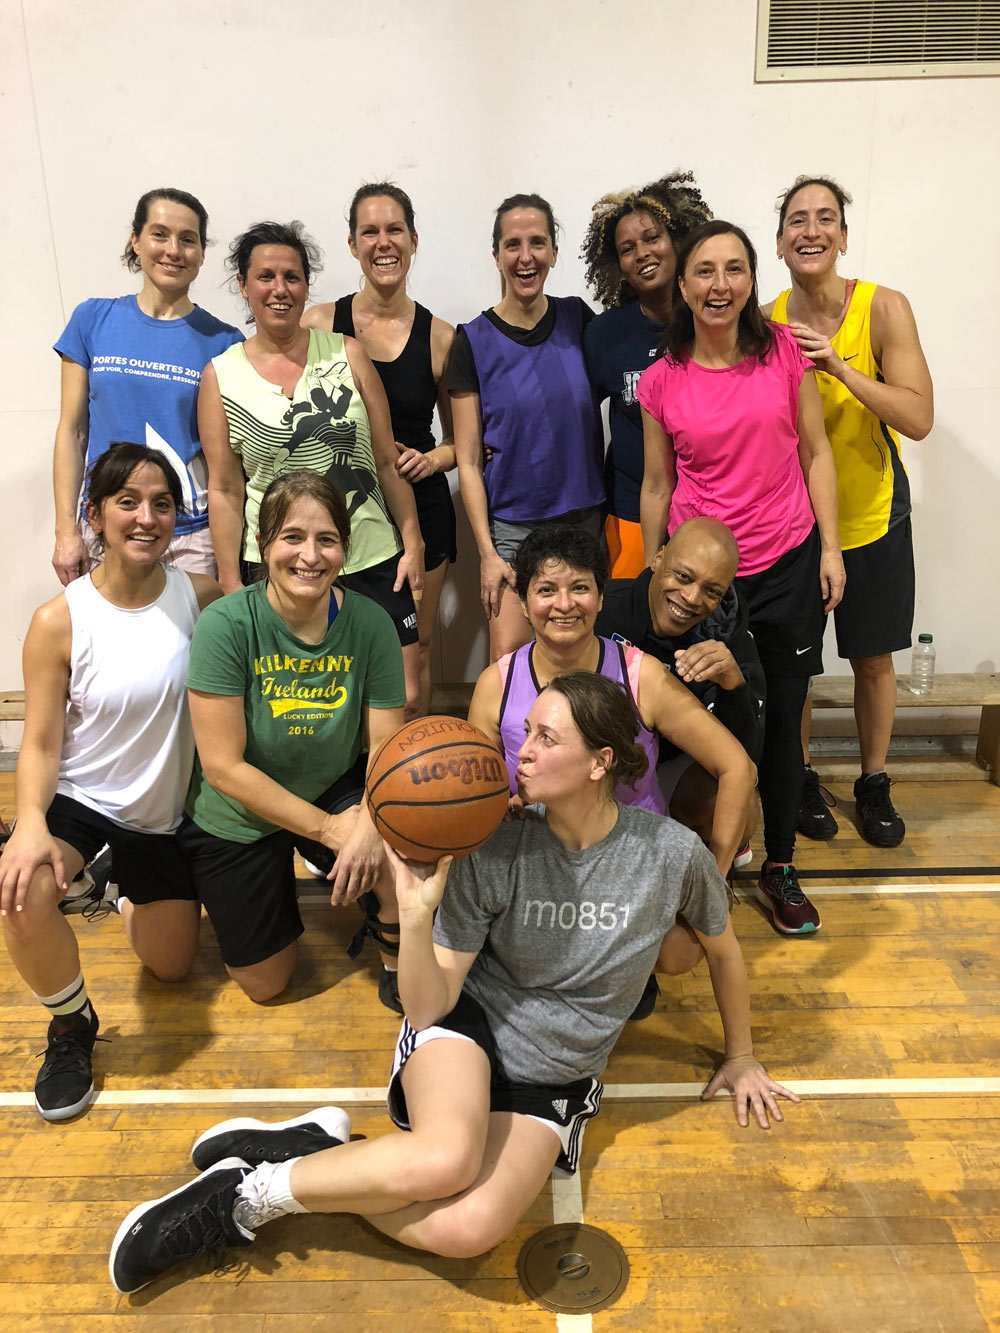 Ladies basketball team in Montreal